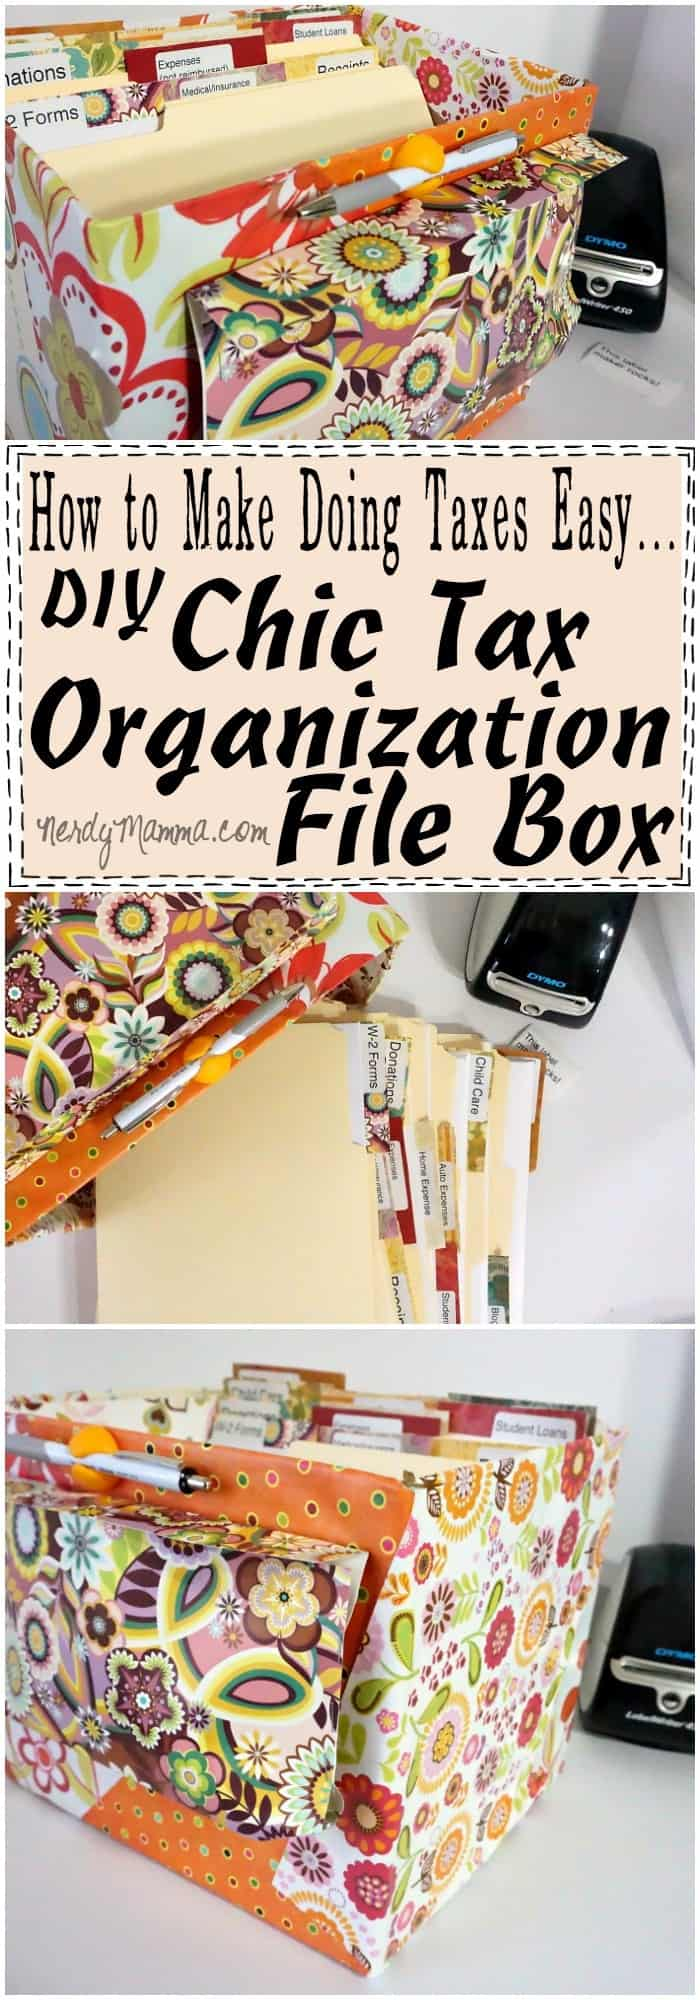 I love this DIY Chic Tax Organization File Box...I can totally see how doing this would make doing taxes easy. I'm absolutely making my own!